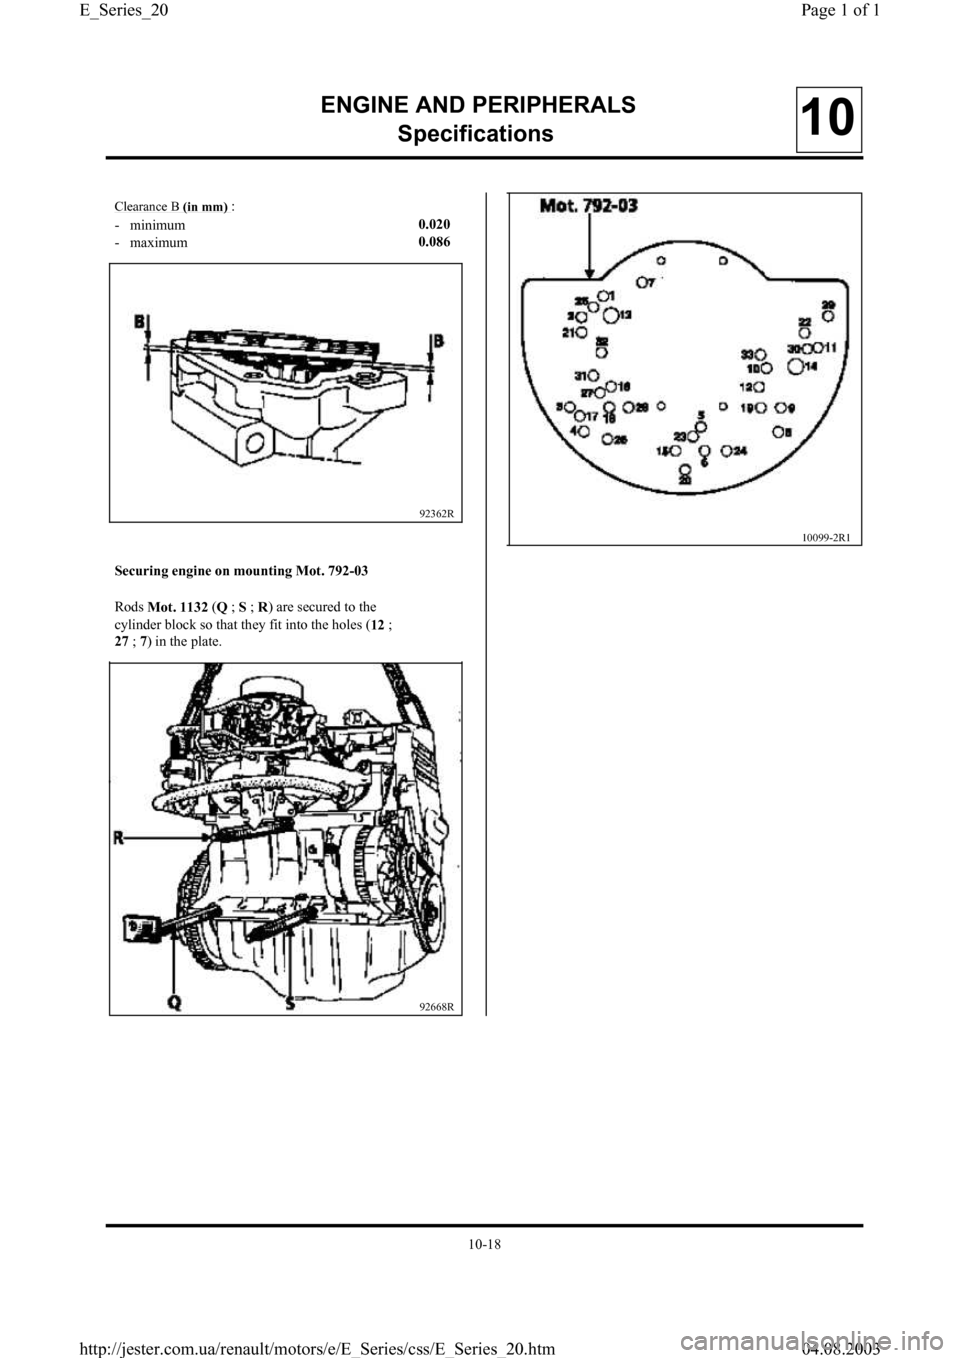 RENAULT CLIO 1997 X57 / 1.G Petrol Engines Workshop Manual, Page 20